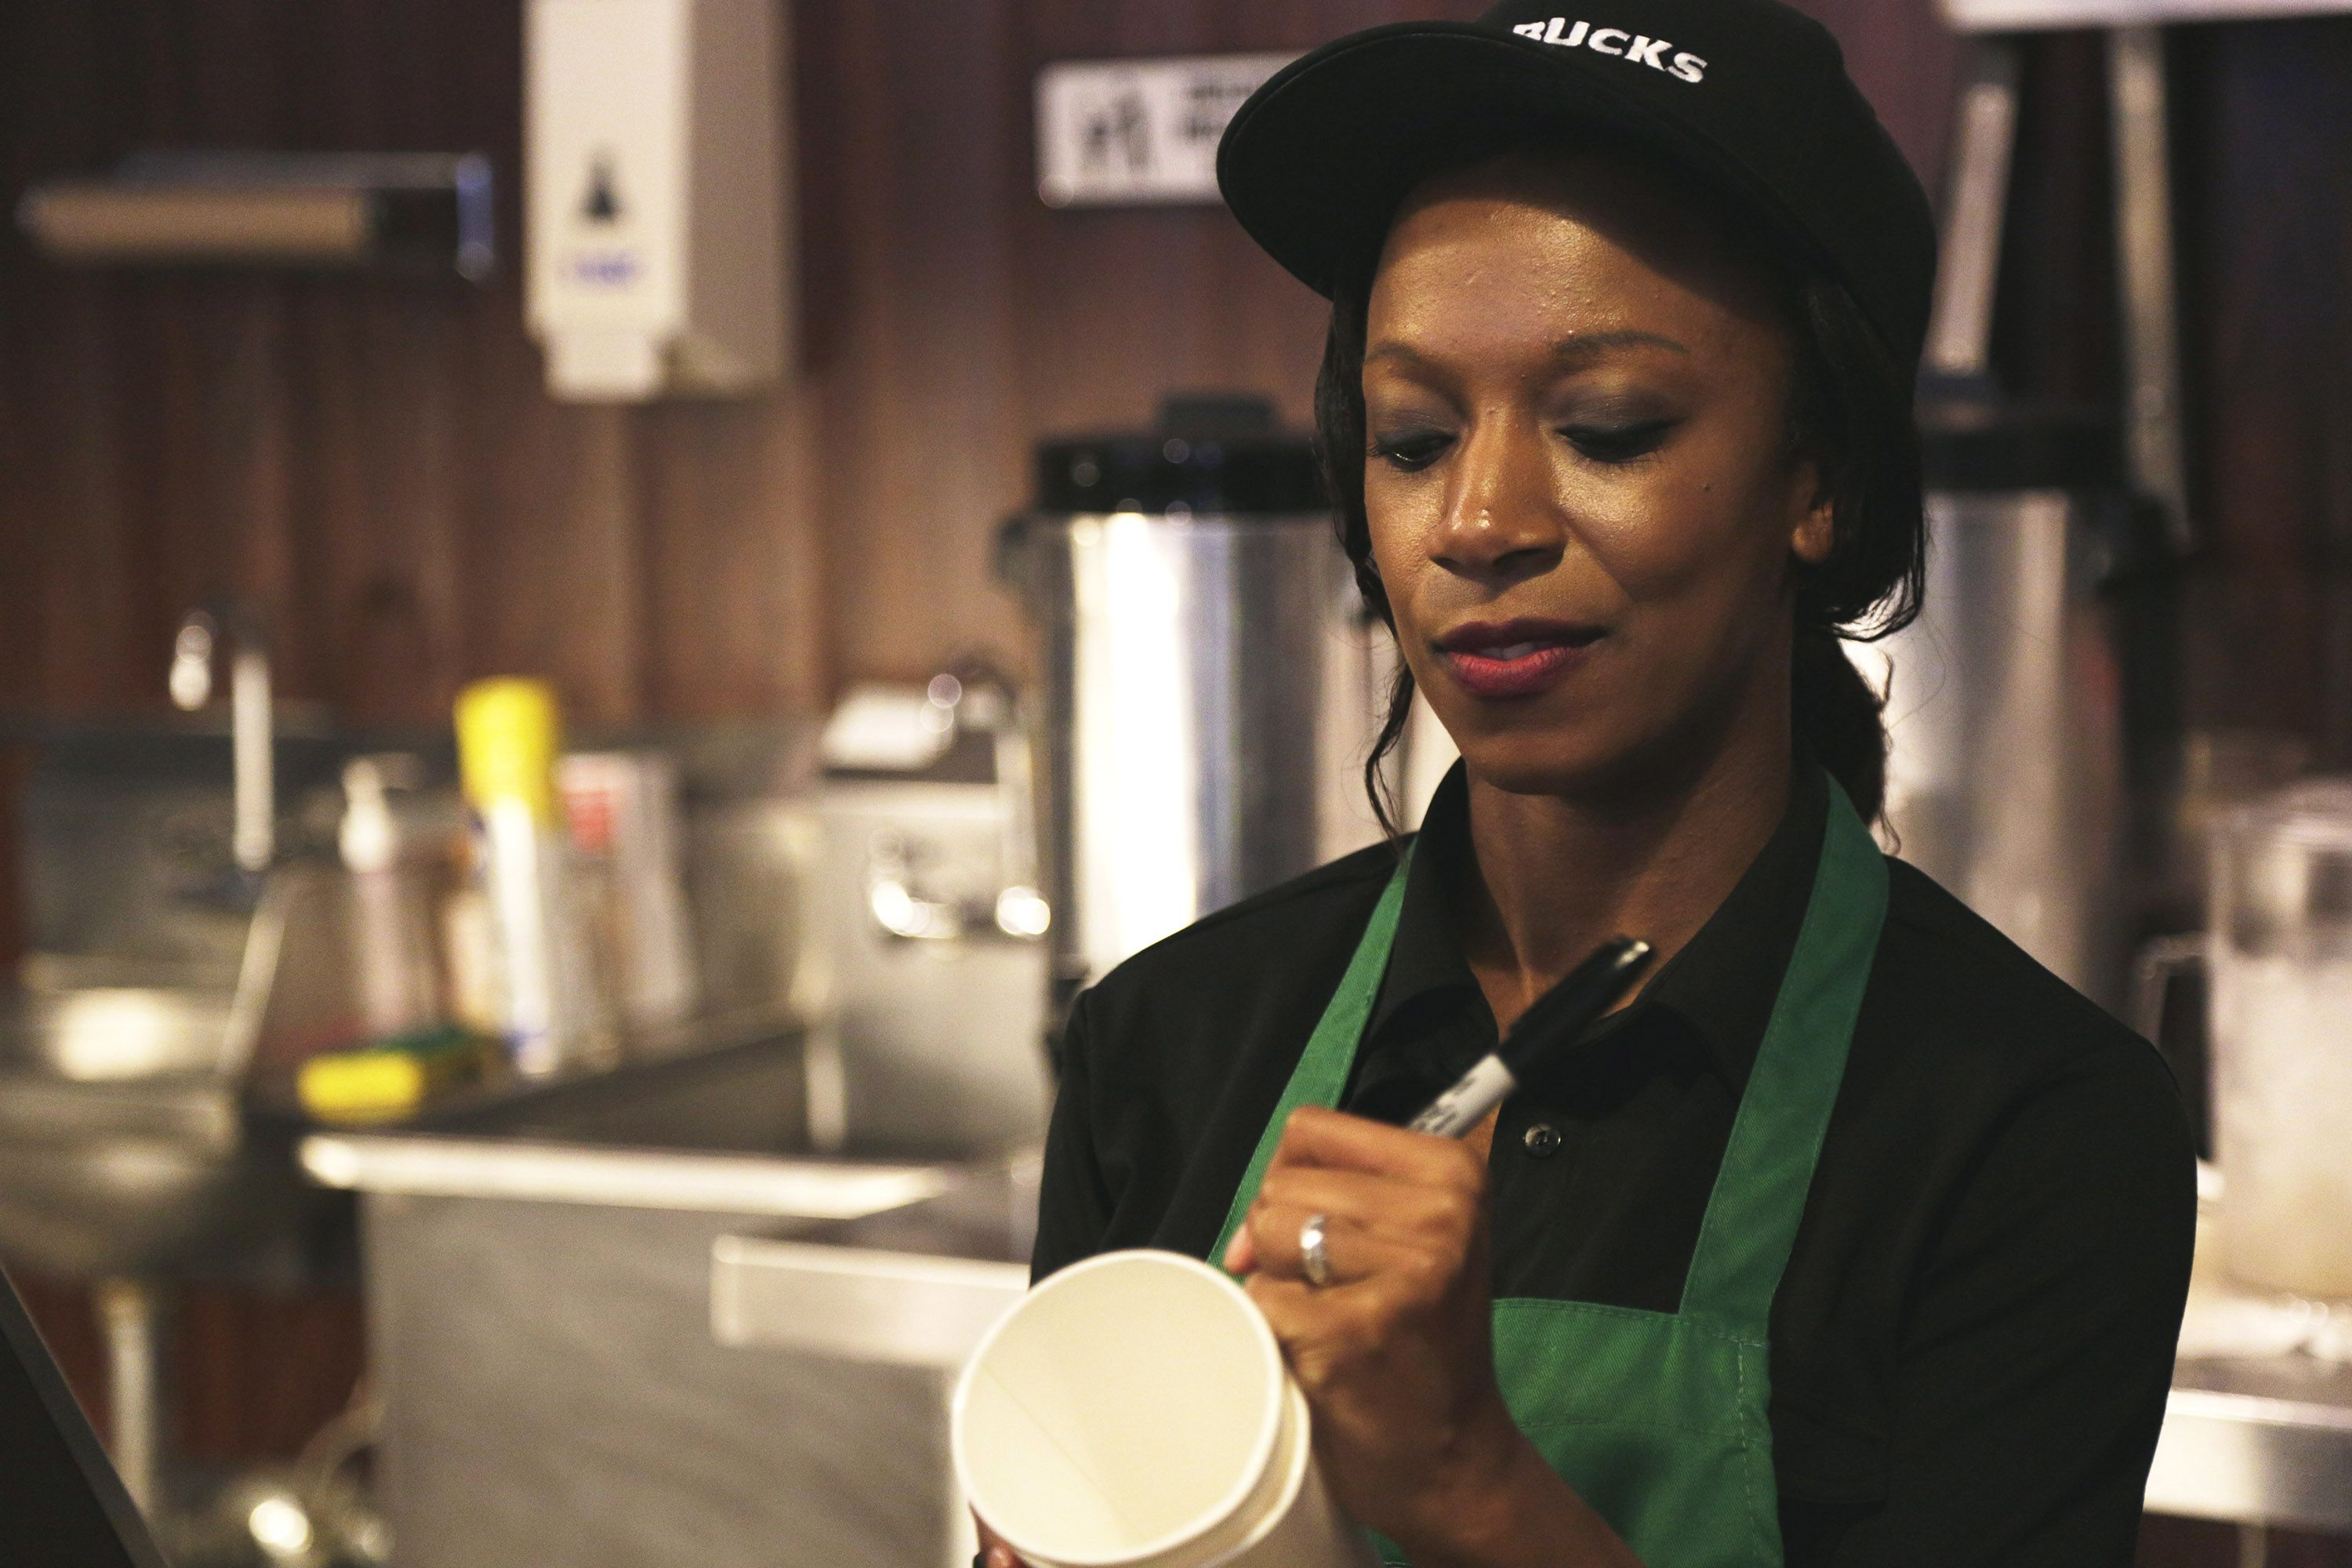 interview insider how to get hired at starbucks